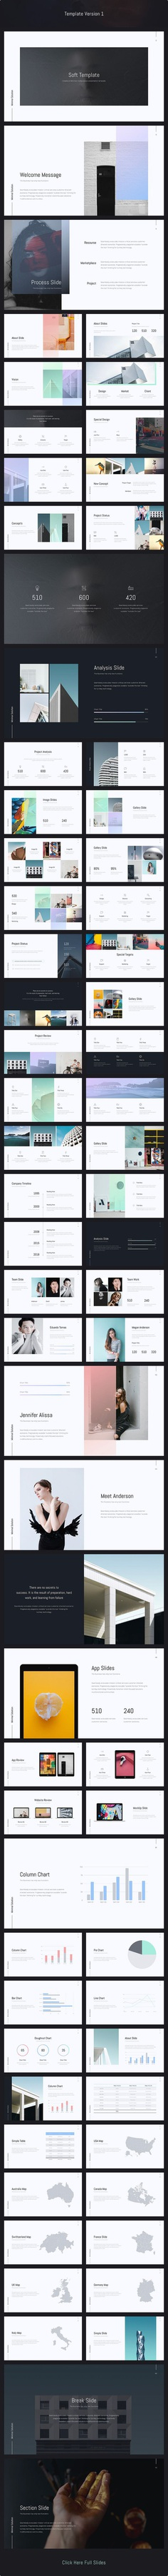 Soft - Minimal Template (Powerpoint) by SimpleSmart | GraphicRiver